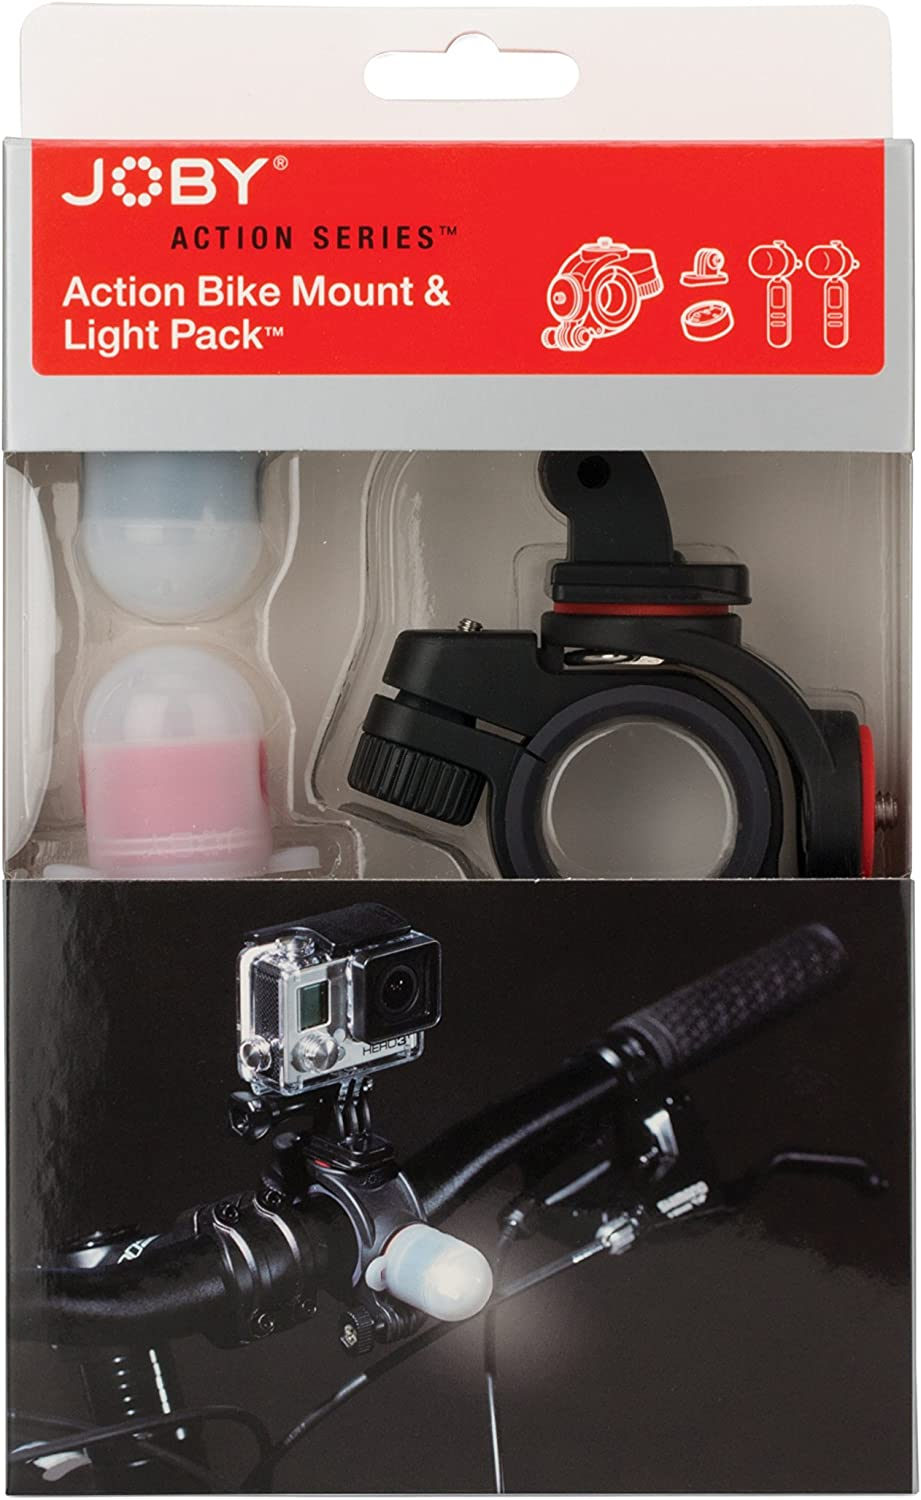 JOBY Bike Mount Outlet SALE Safety and trust Light Pack for Action GoPro Cam Other Video or